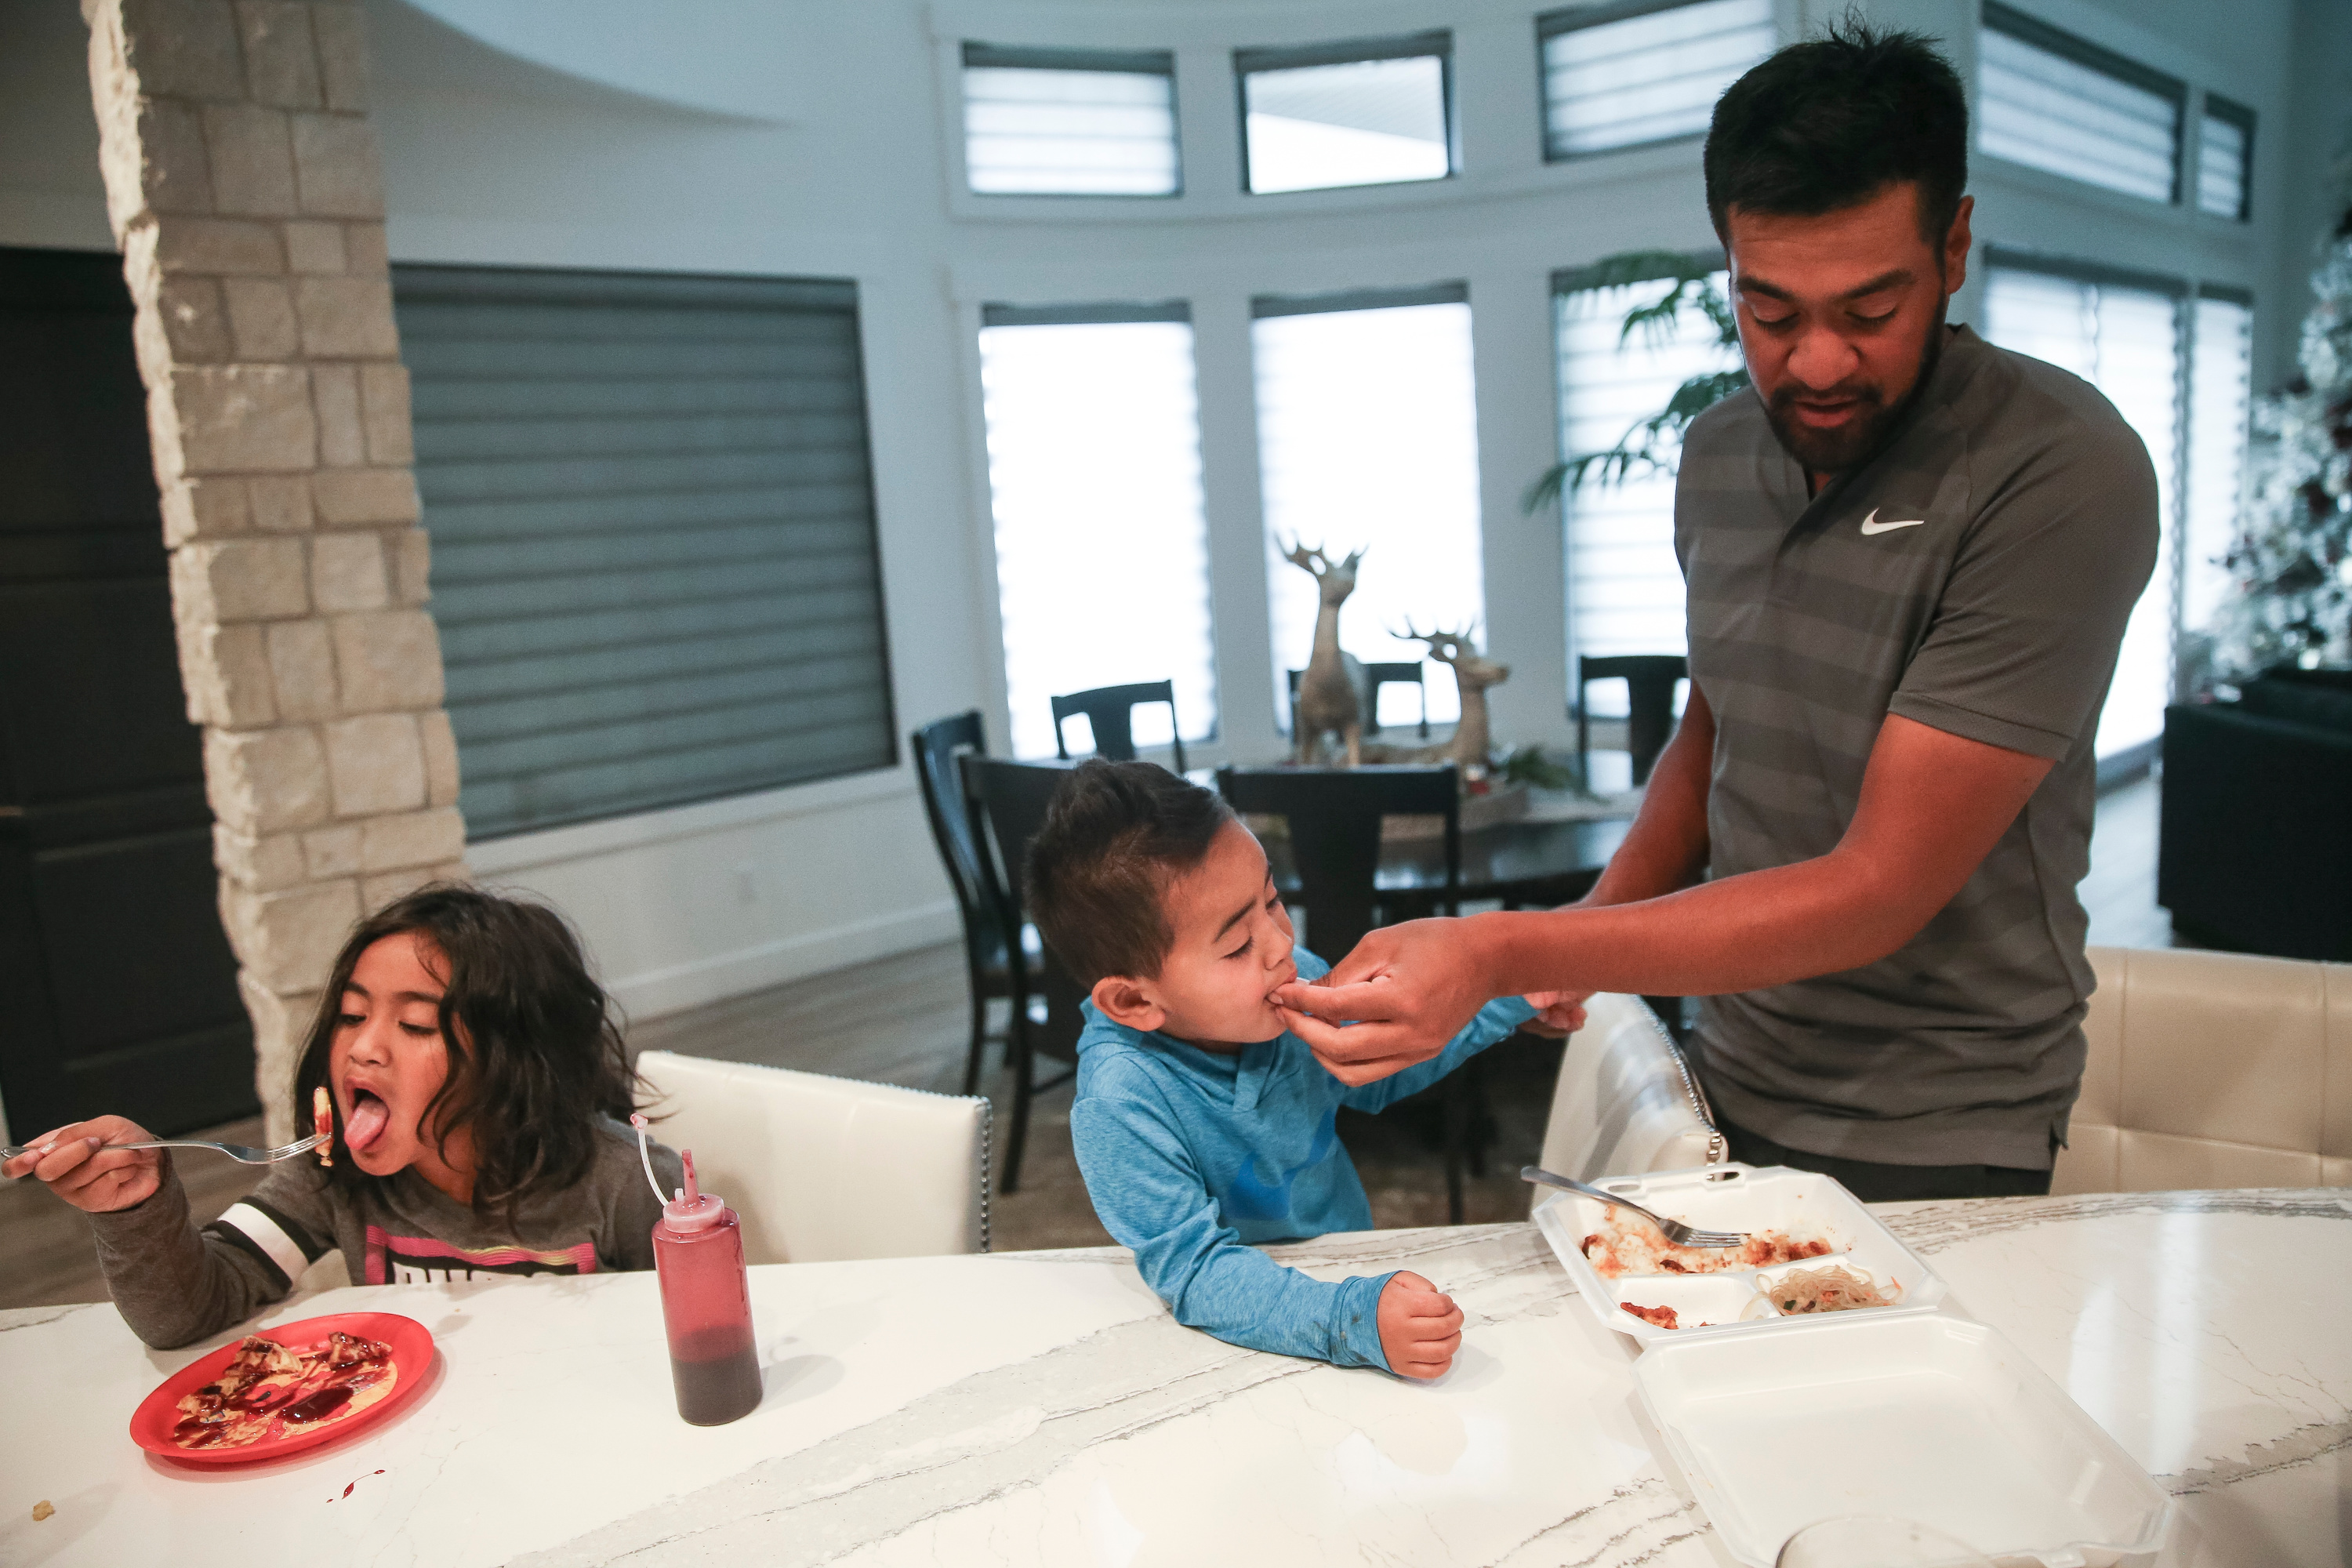 PGA golfer Tony Finau eats with two of his children, Sage, 1, and Tony, 2, at their home in Lehi on Tuesday, Feb. 6, 2018.